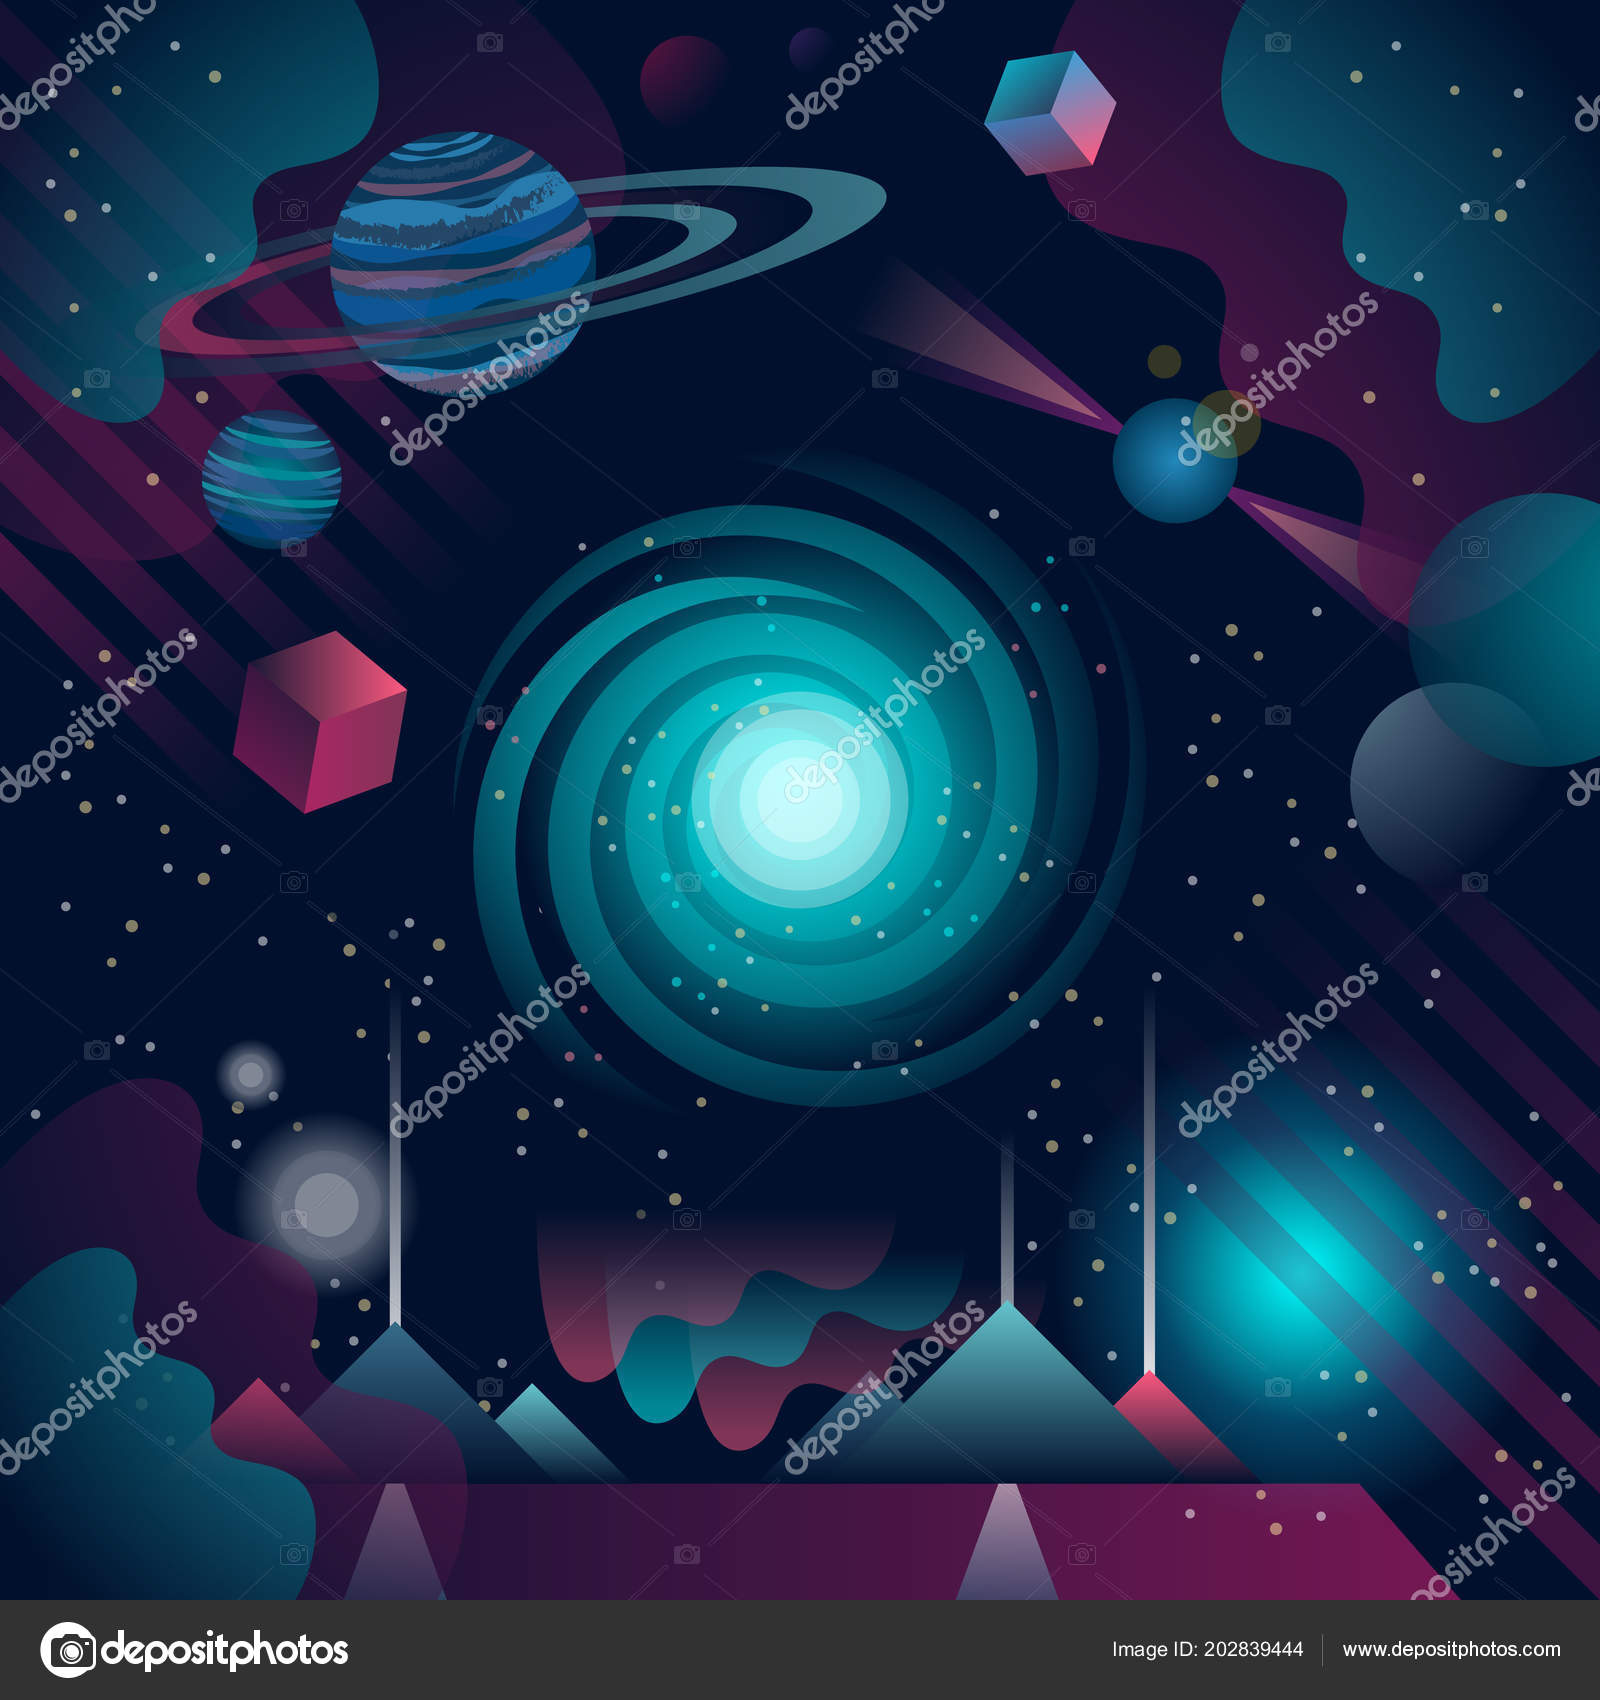 vector illustration of futuristic and abstract cosmos background